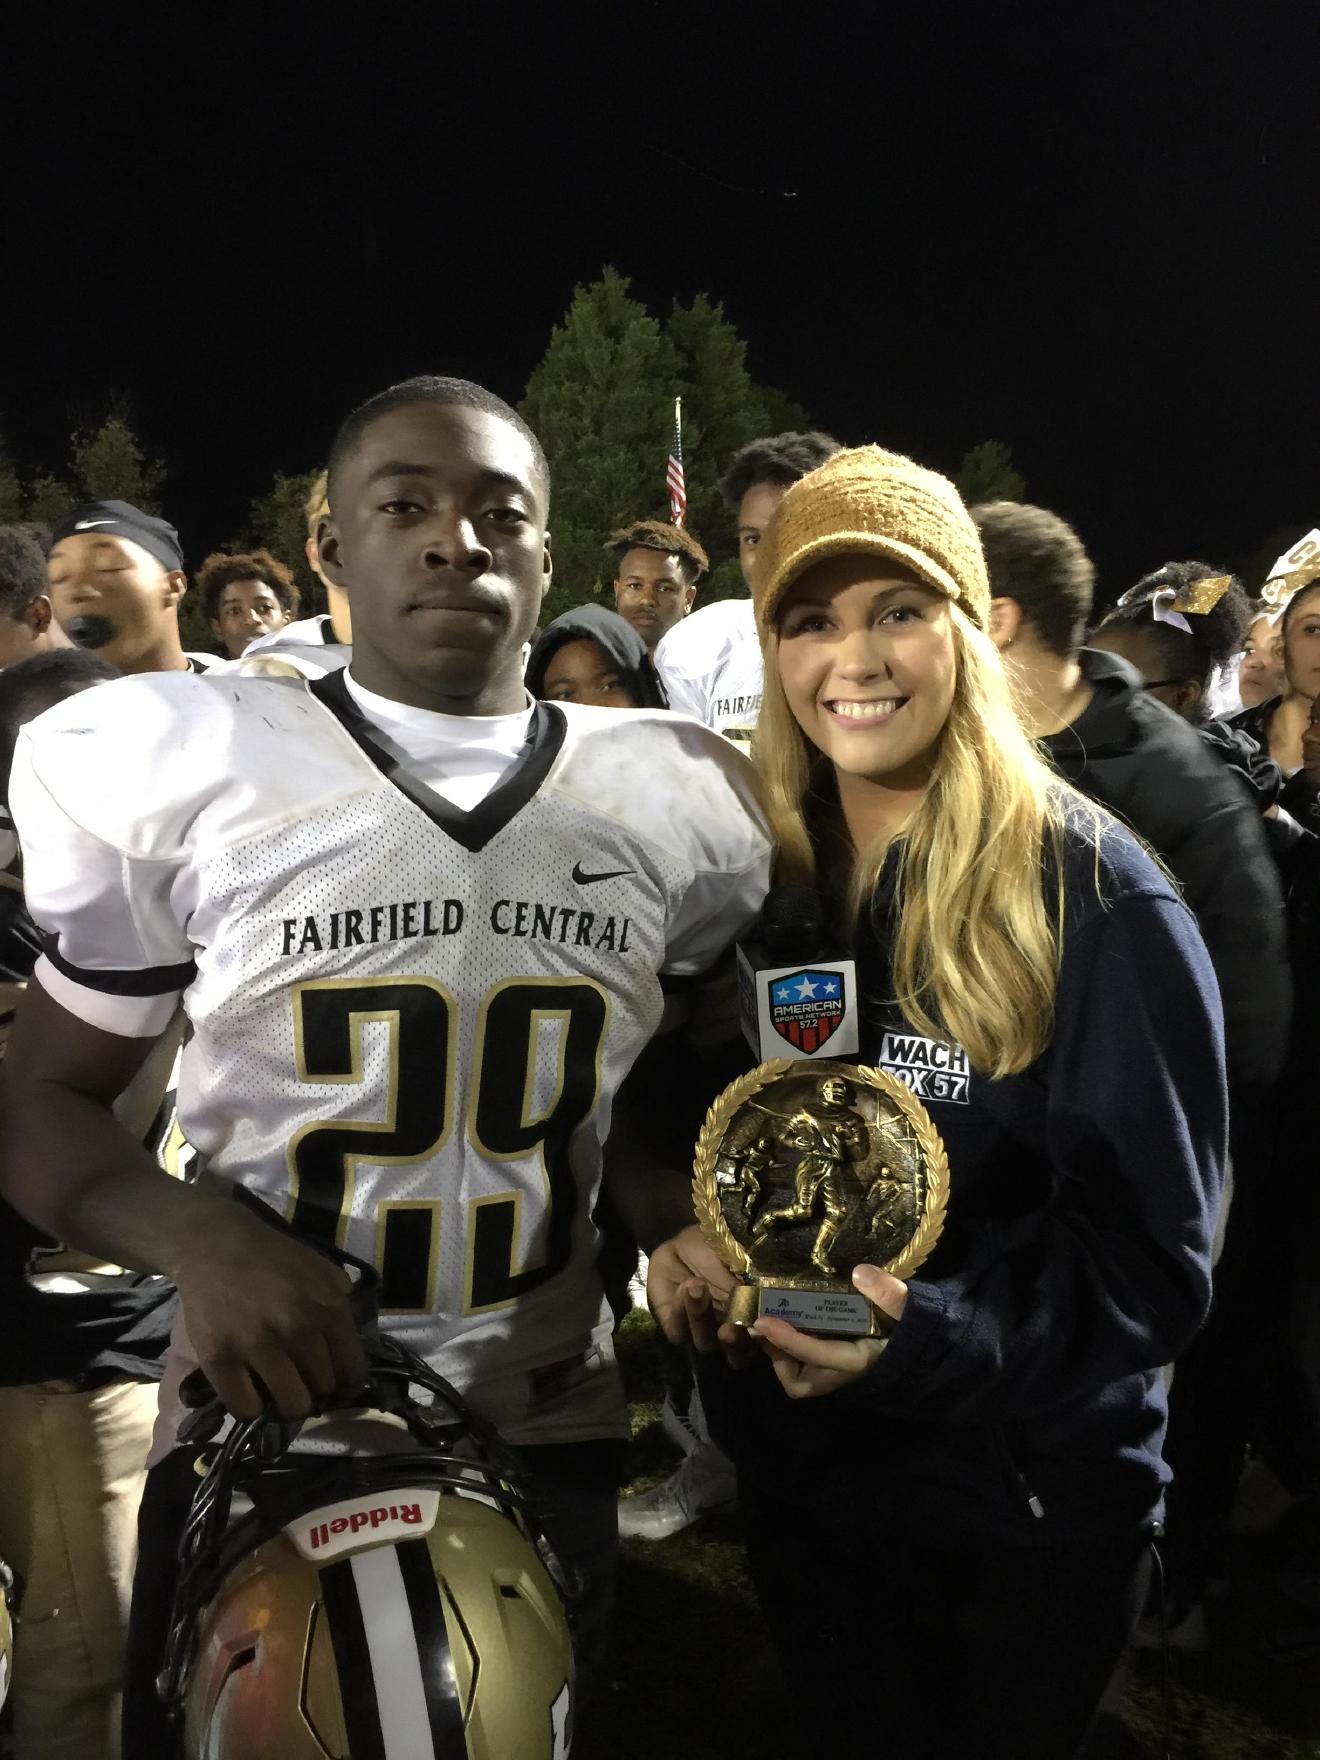 Courtney King presents Fairfield Central's Tony Ruff with the Player of the Game award.